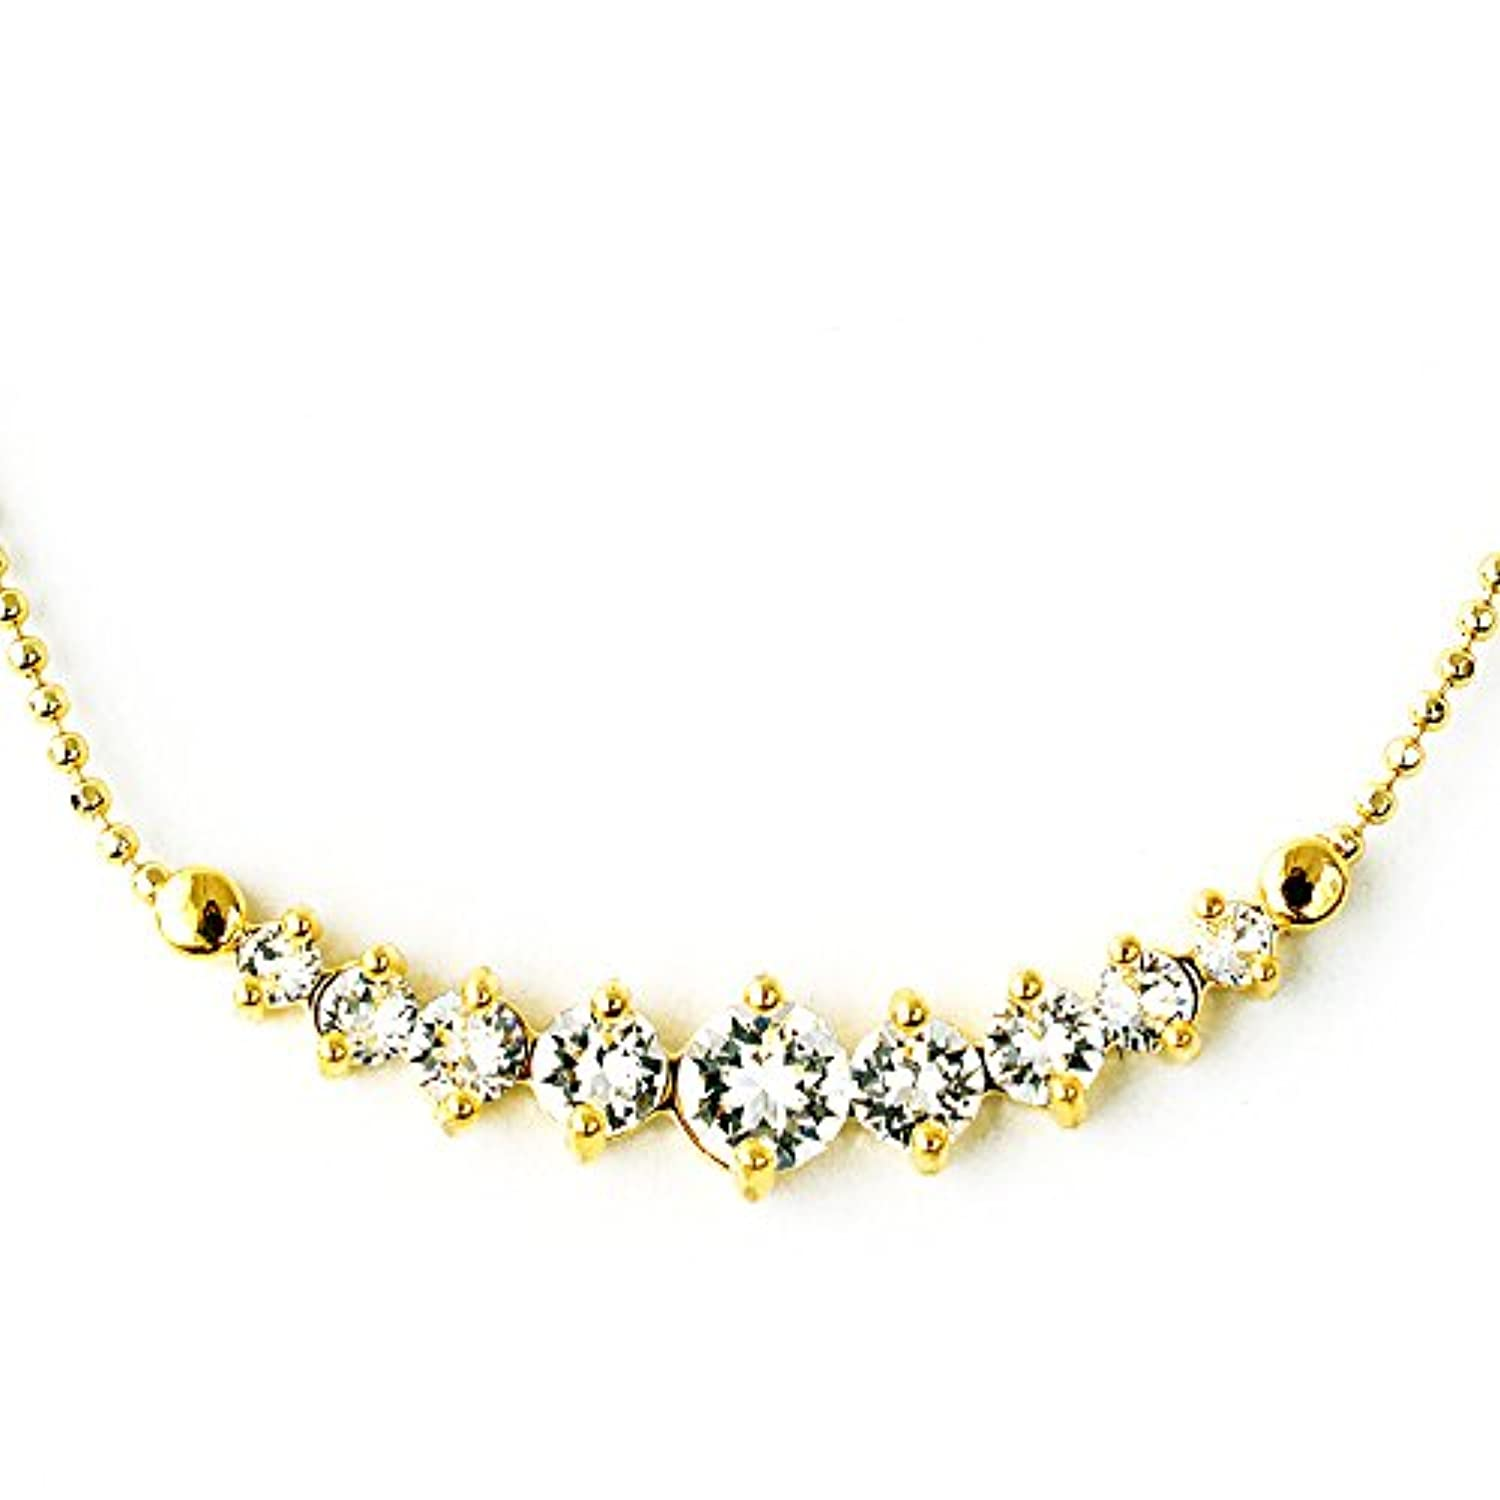 One&Only Jewellery スワロフスキー エレメンツ グラデーション ネックレス K18GP 正規ストーン採用 (イエロー)